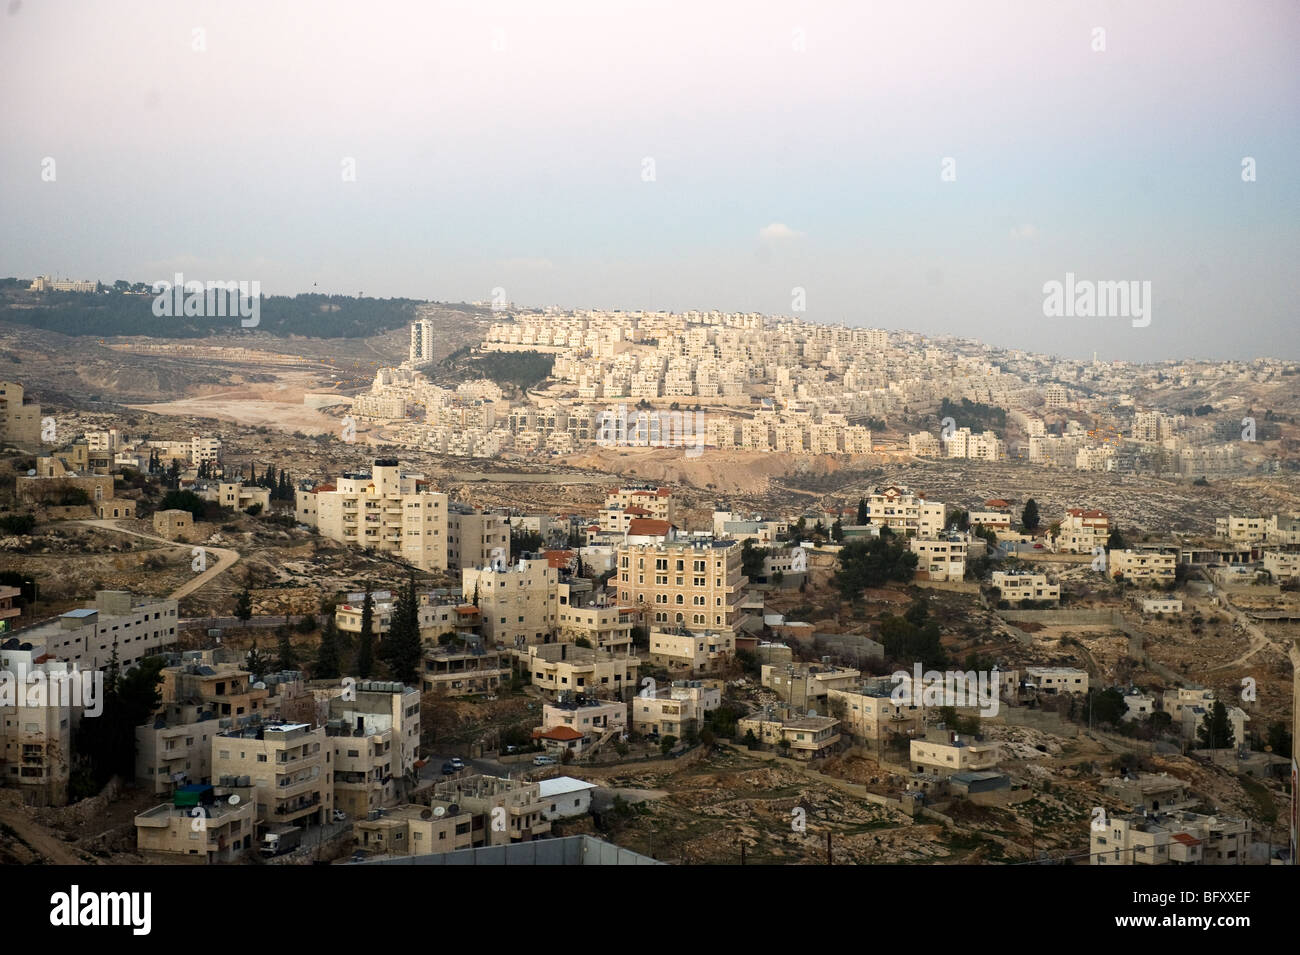 Bethlehem is believed to be the birthplace of Jesus of Nazareth and is in the occupied west bank, Palestine. - Stock Image